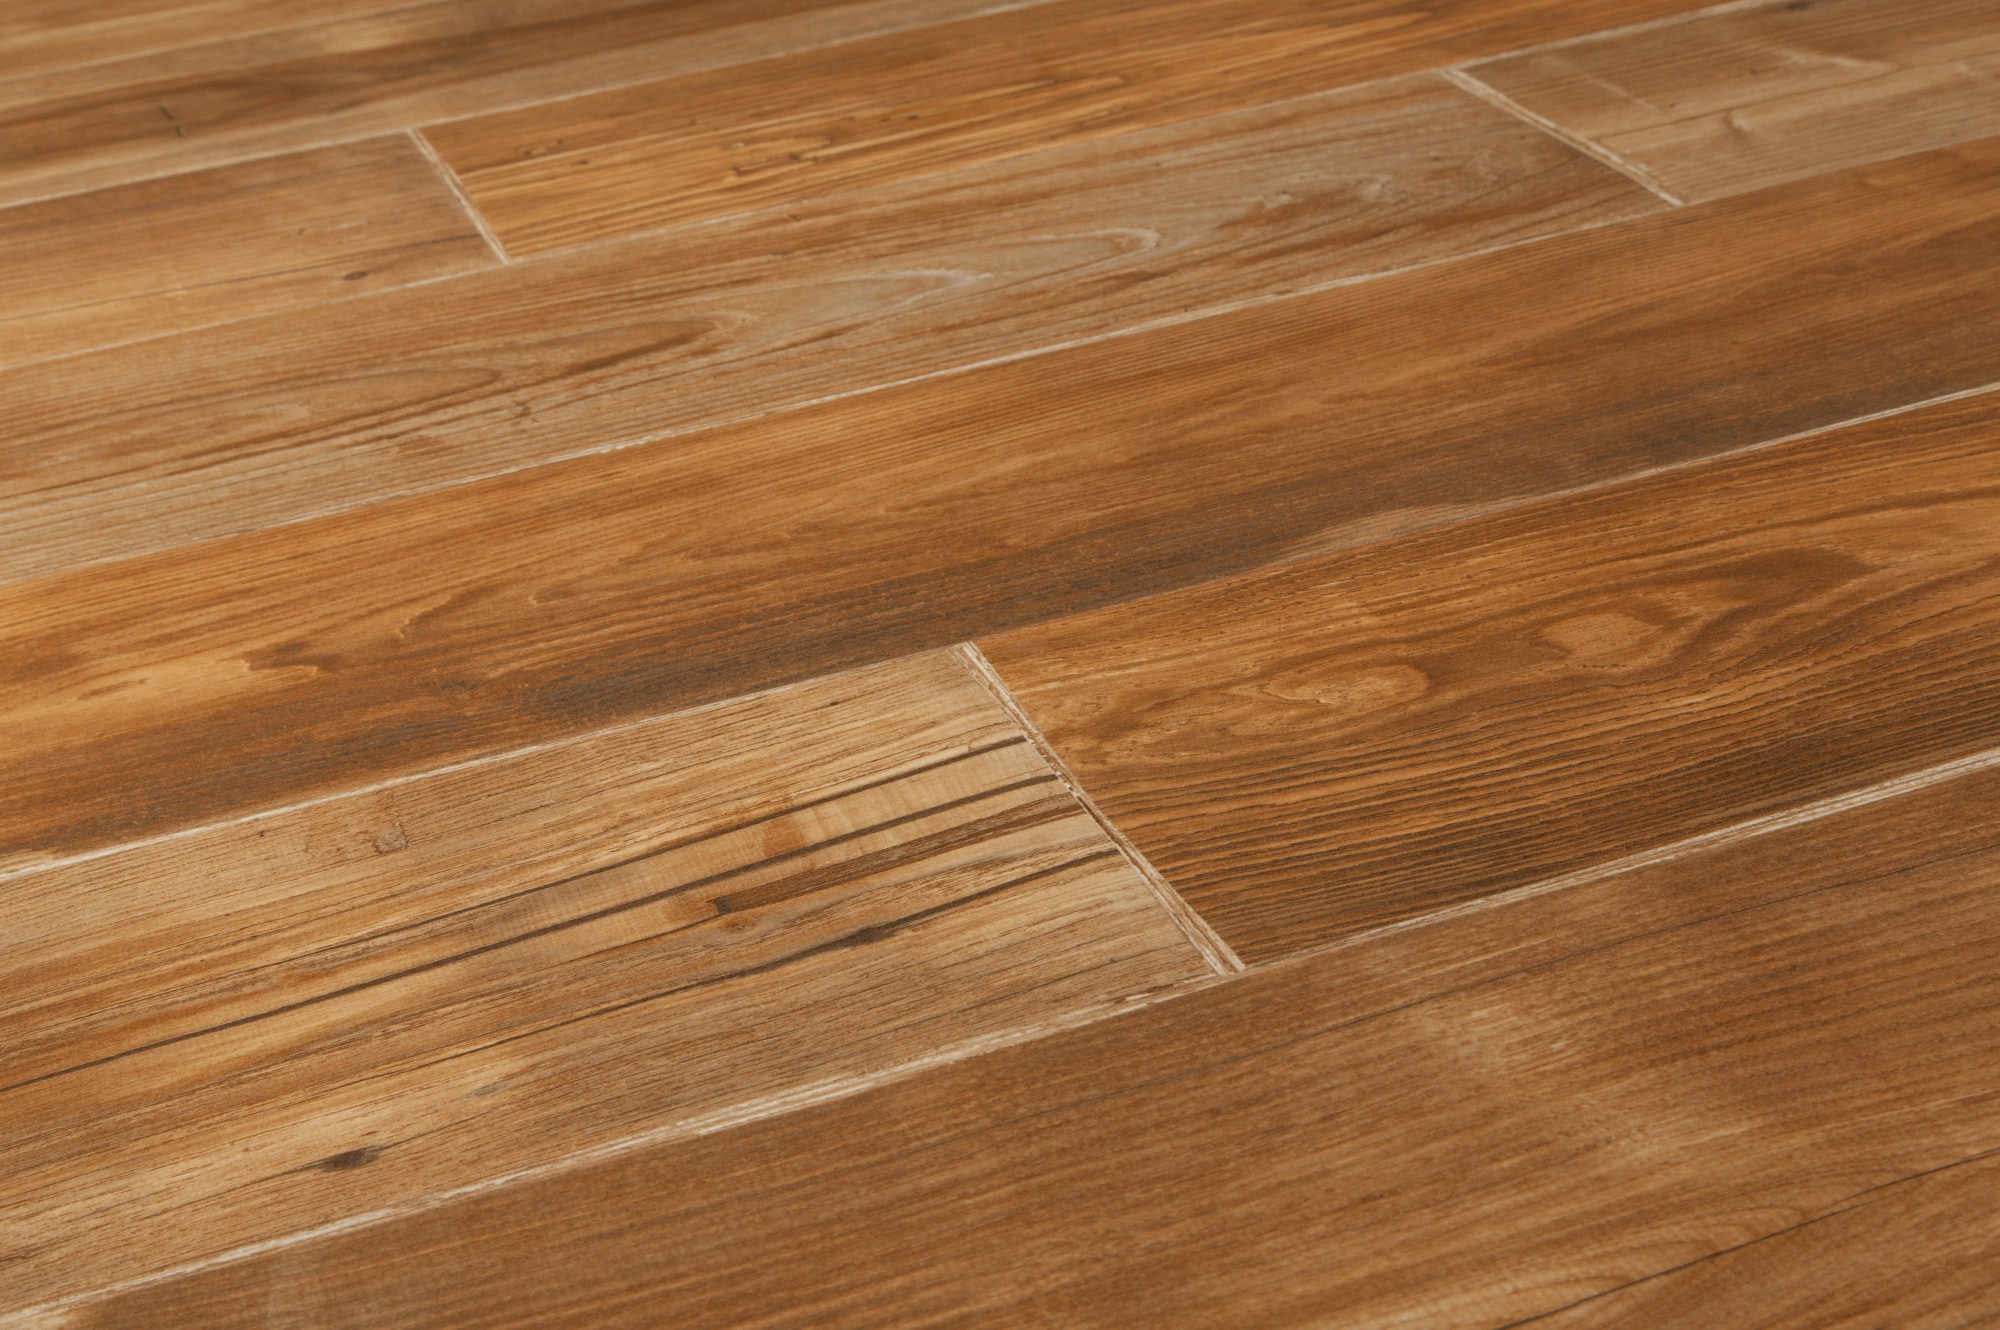 Toklo laminate 12mm french country estate collection for Toklo laminate flooring reviews